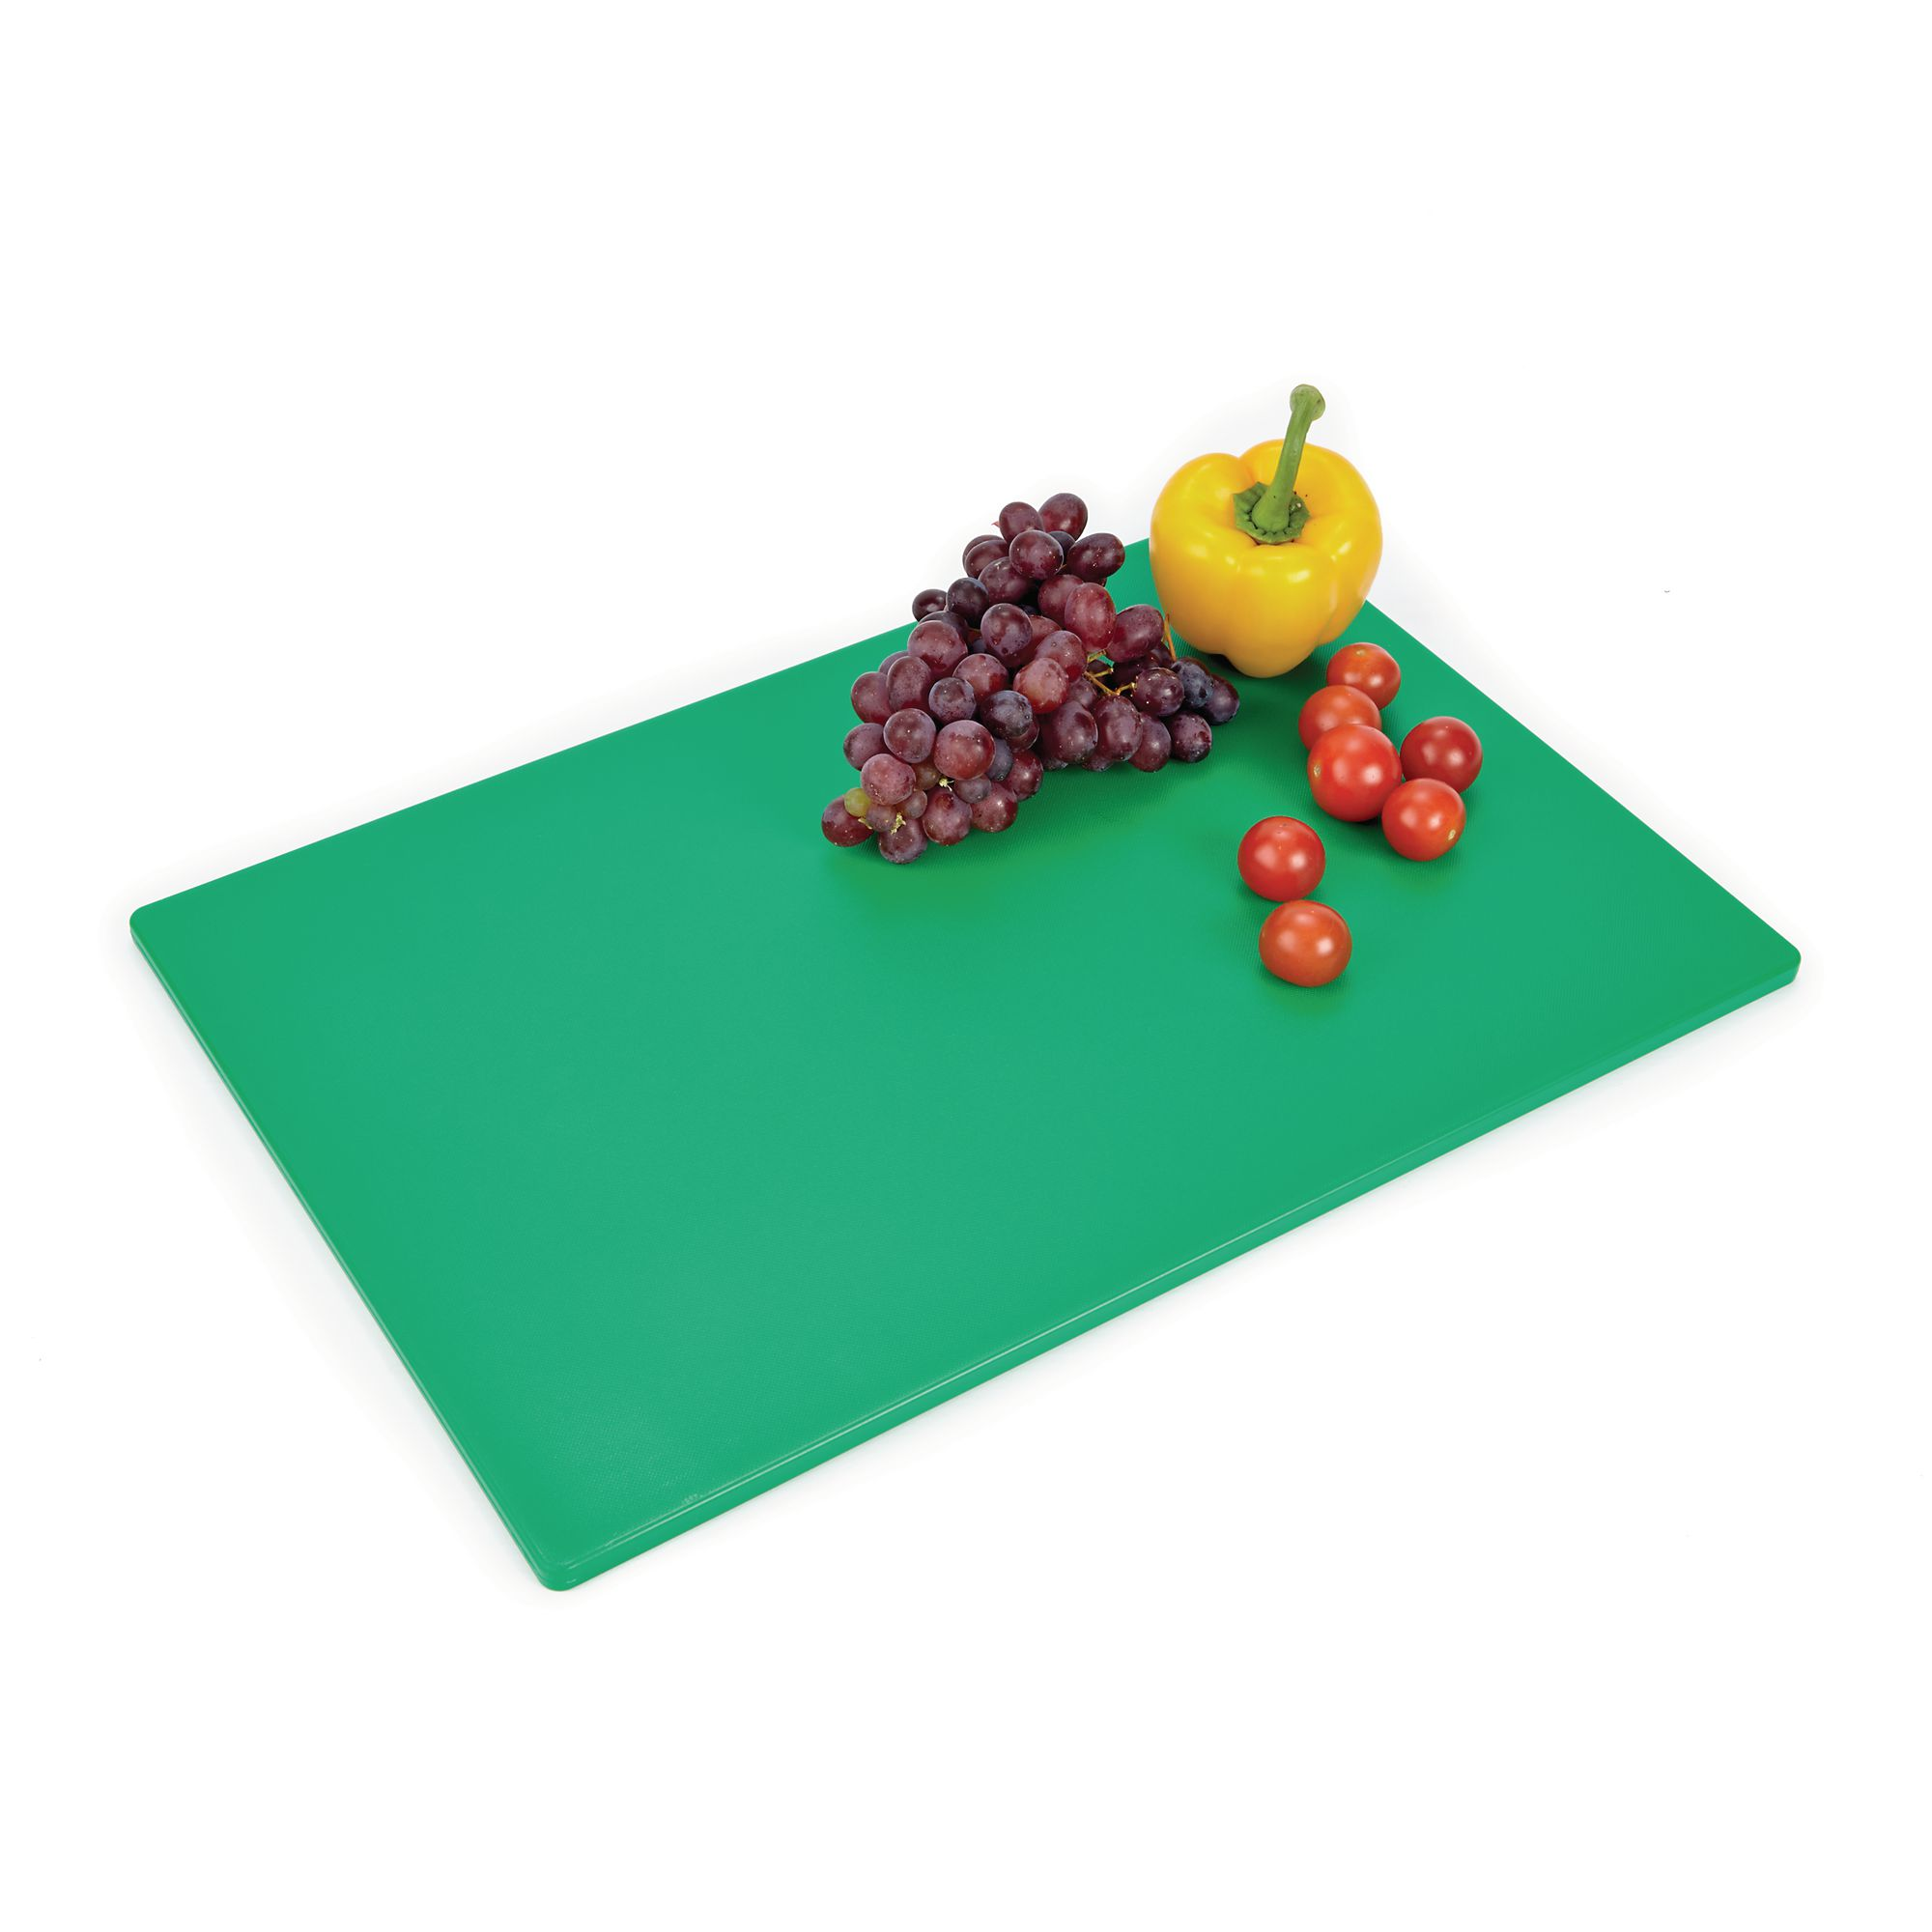 Colour Coded Cutting Boards - Green